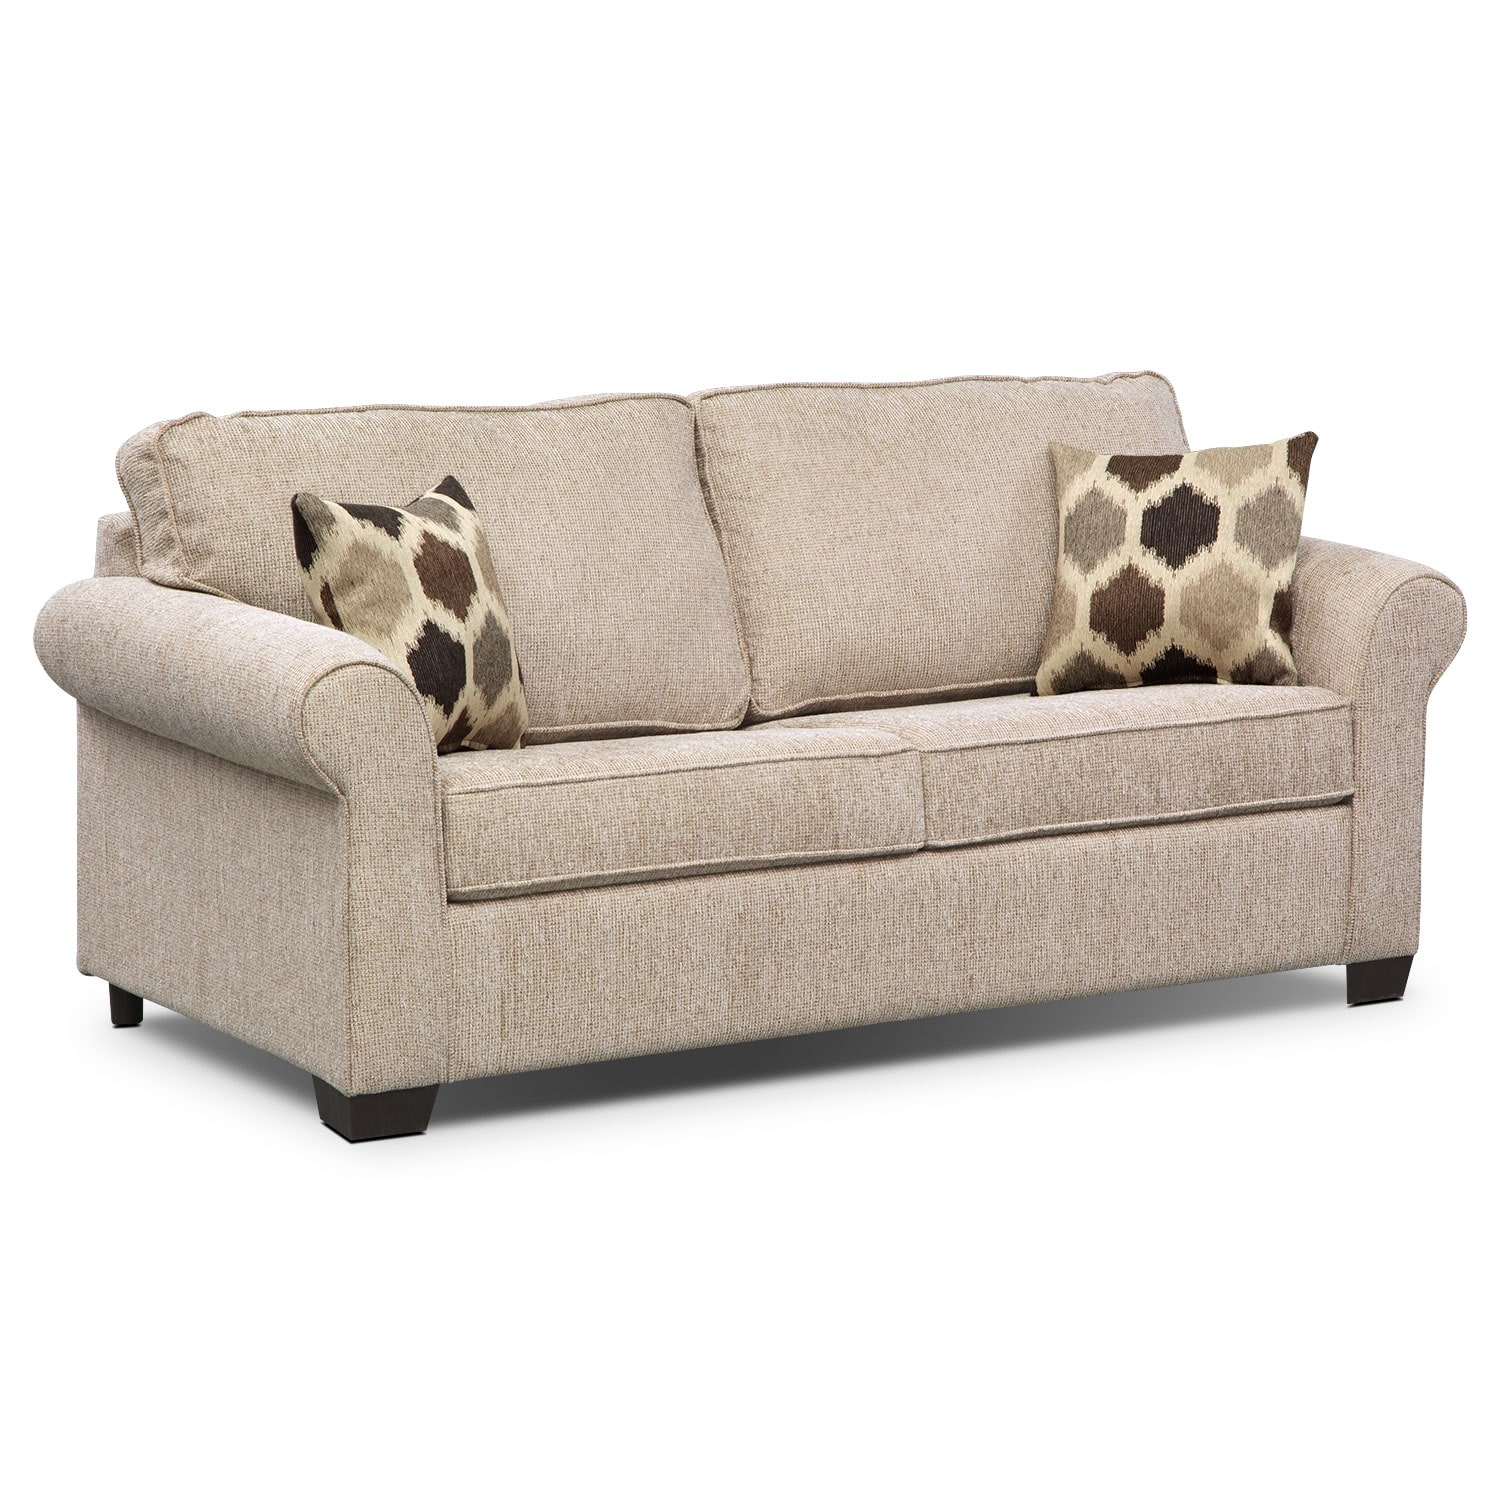 Fletcher full memory foam sleeper sofa american signature furniture Sofa sleeper loveseat